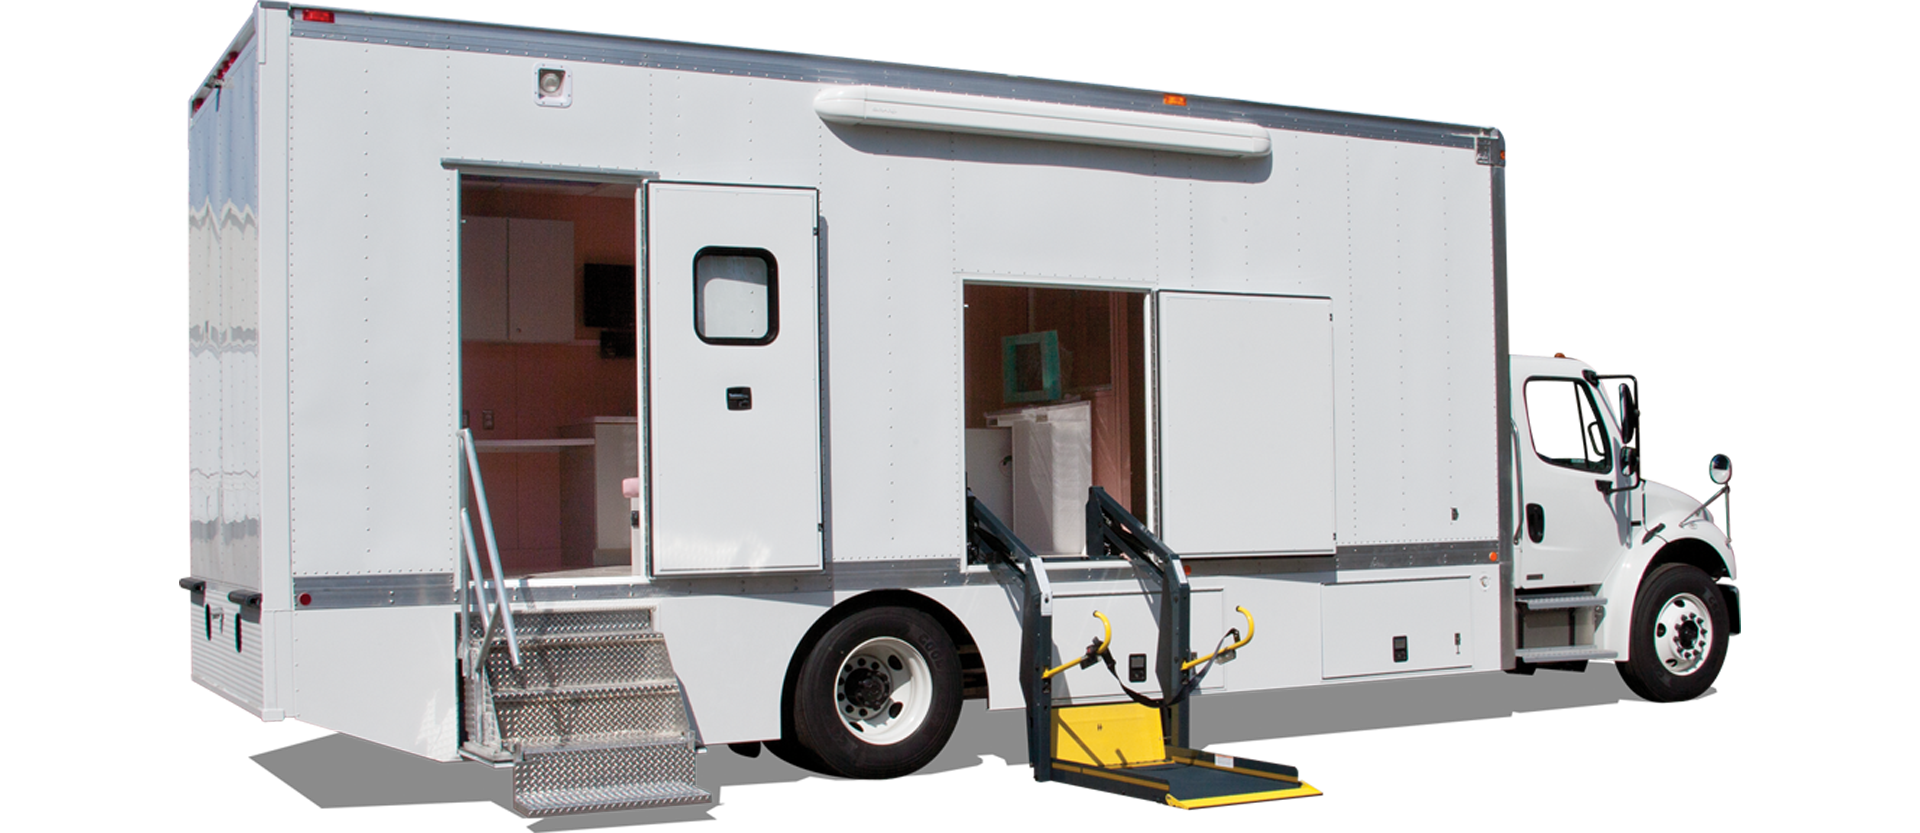 we will surely consider and recommend kentucky trailer in supplying trucks and trailers as we have tested it and found very reliable